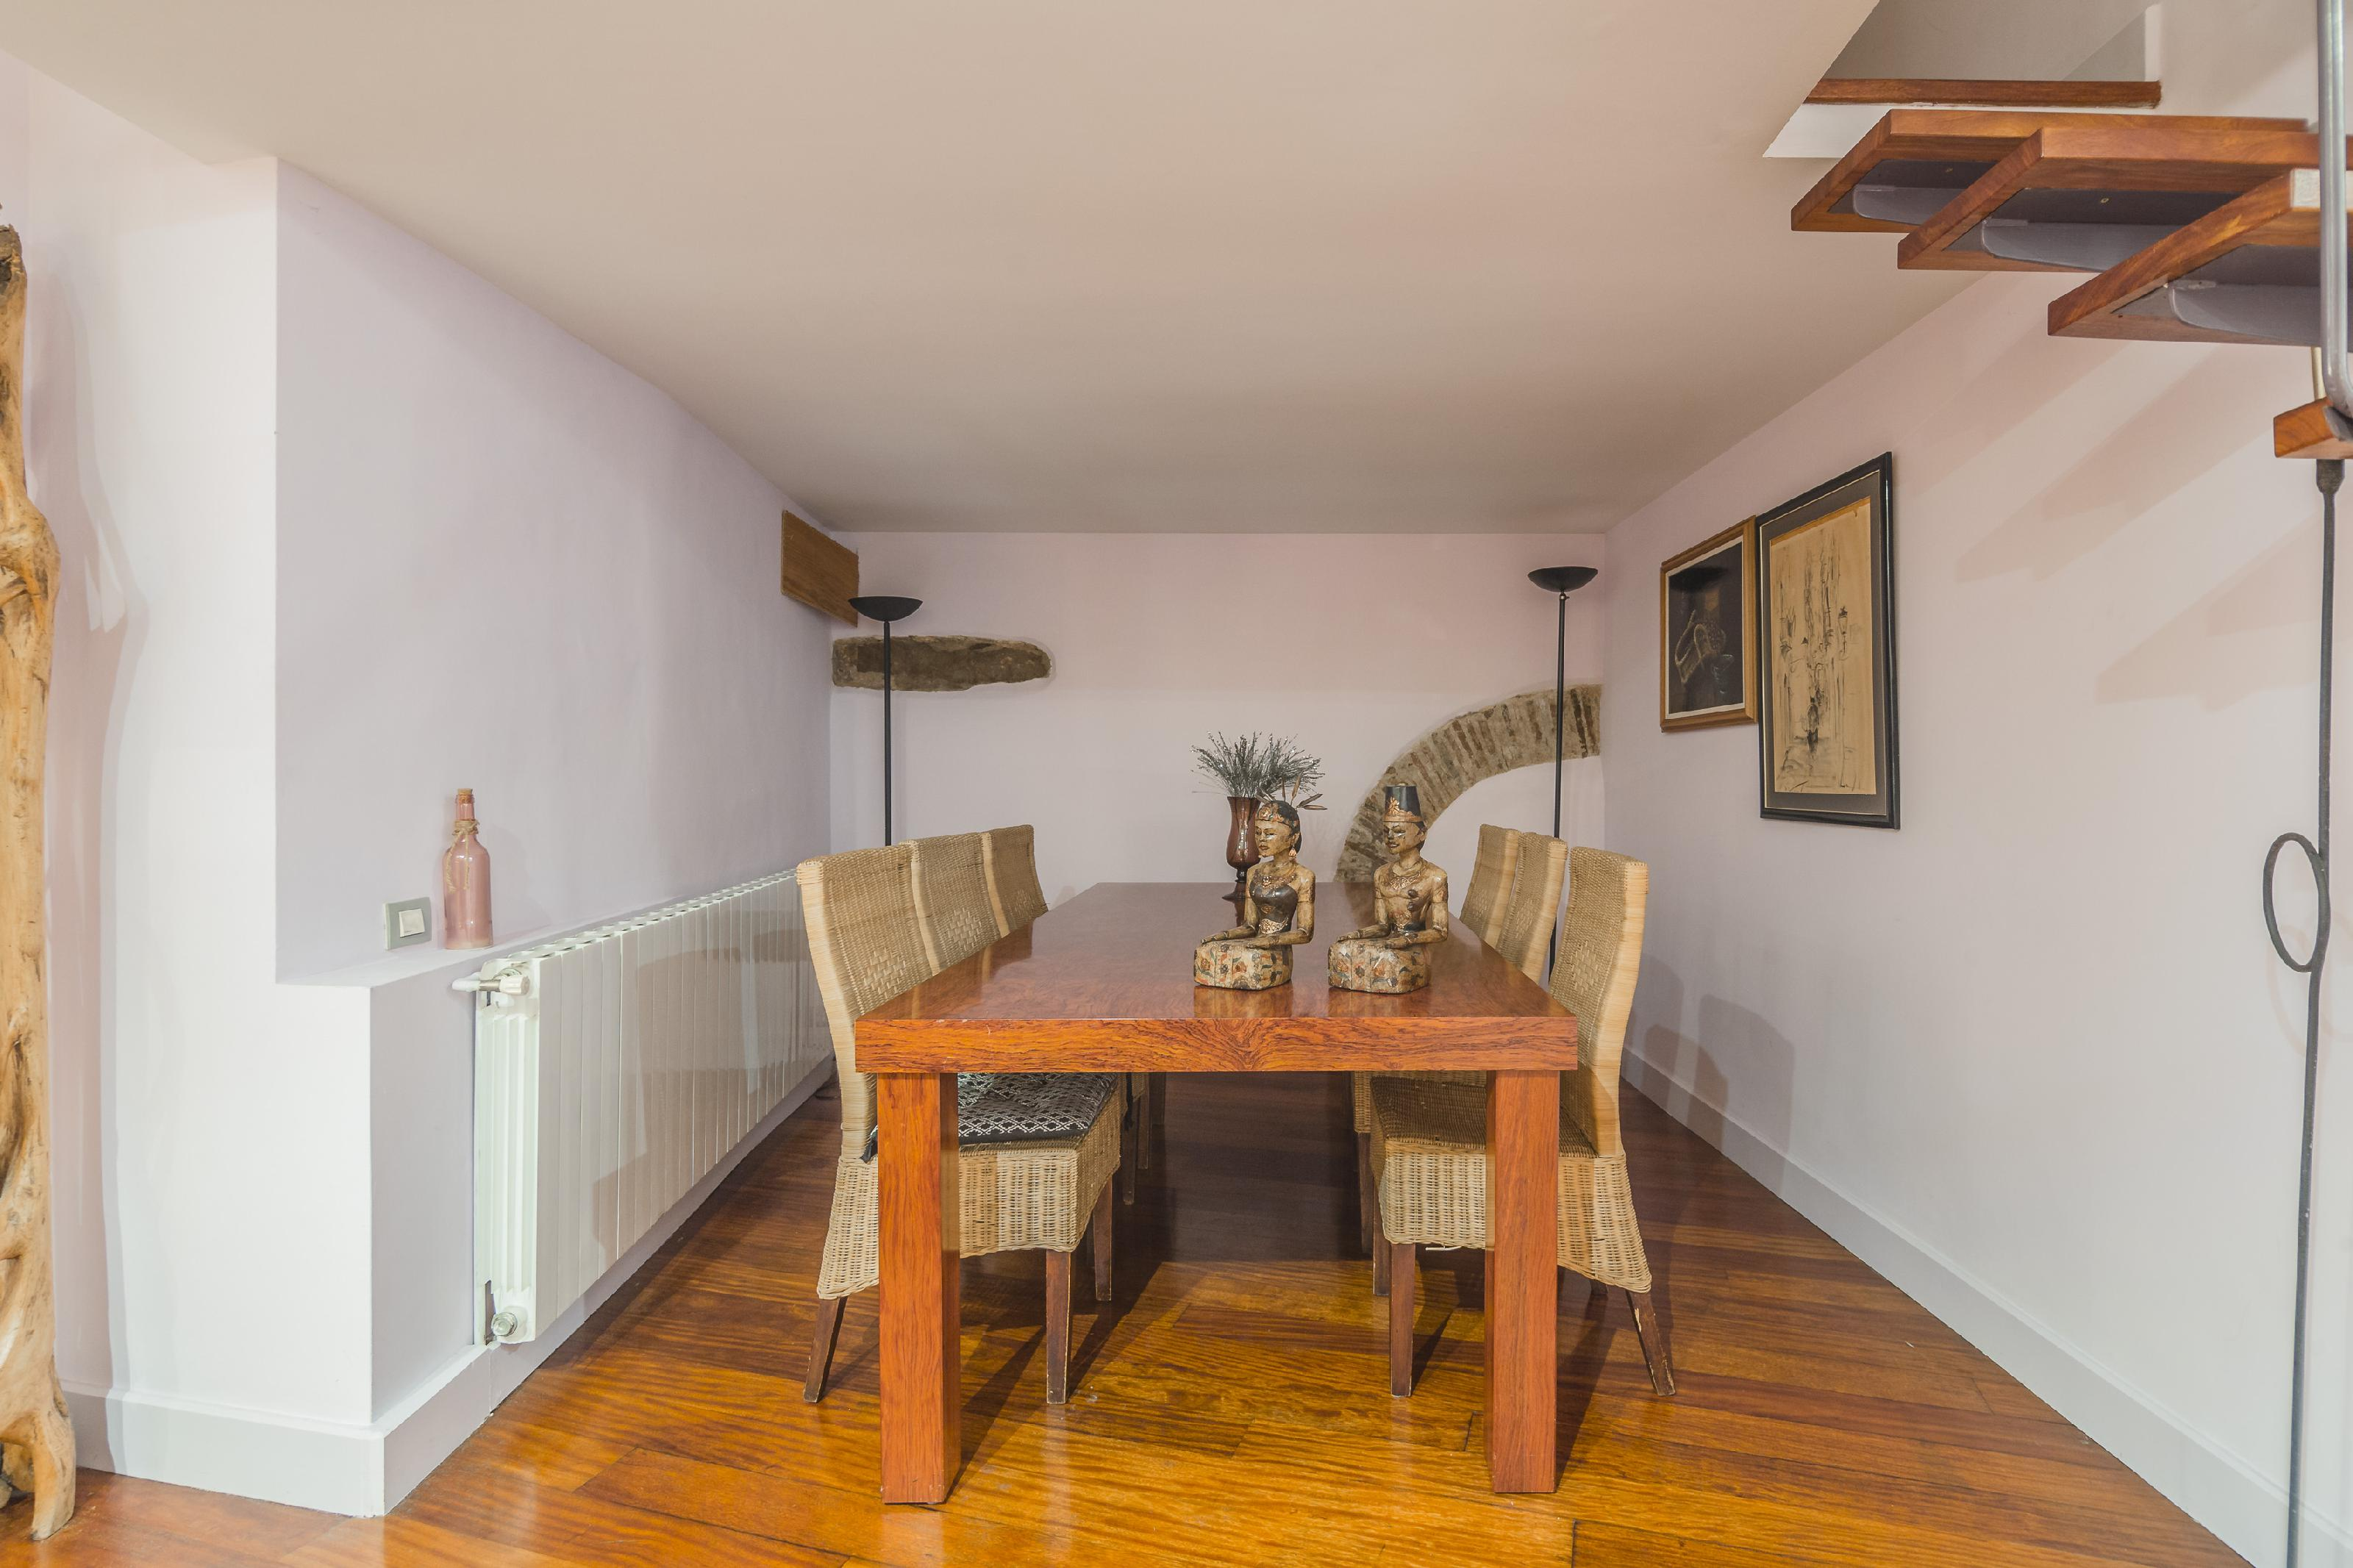 241111 Flat for sale in Ciutat Vella, Barri Gótic 14